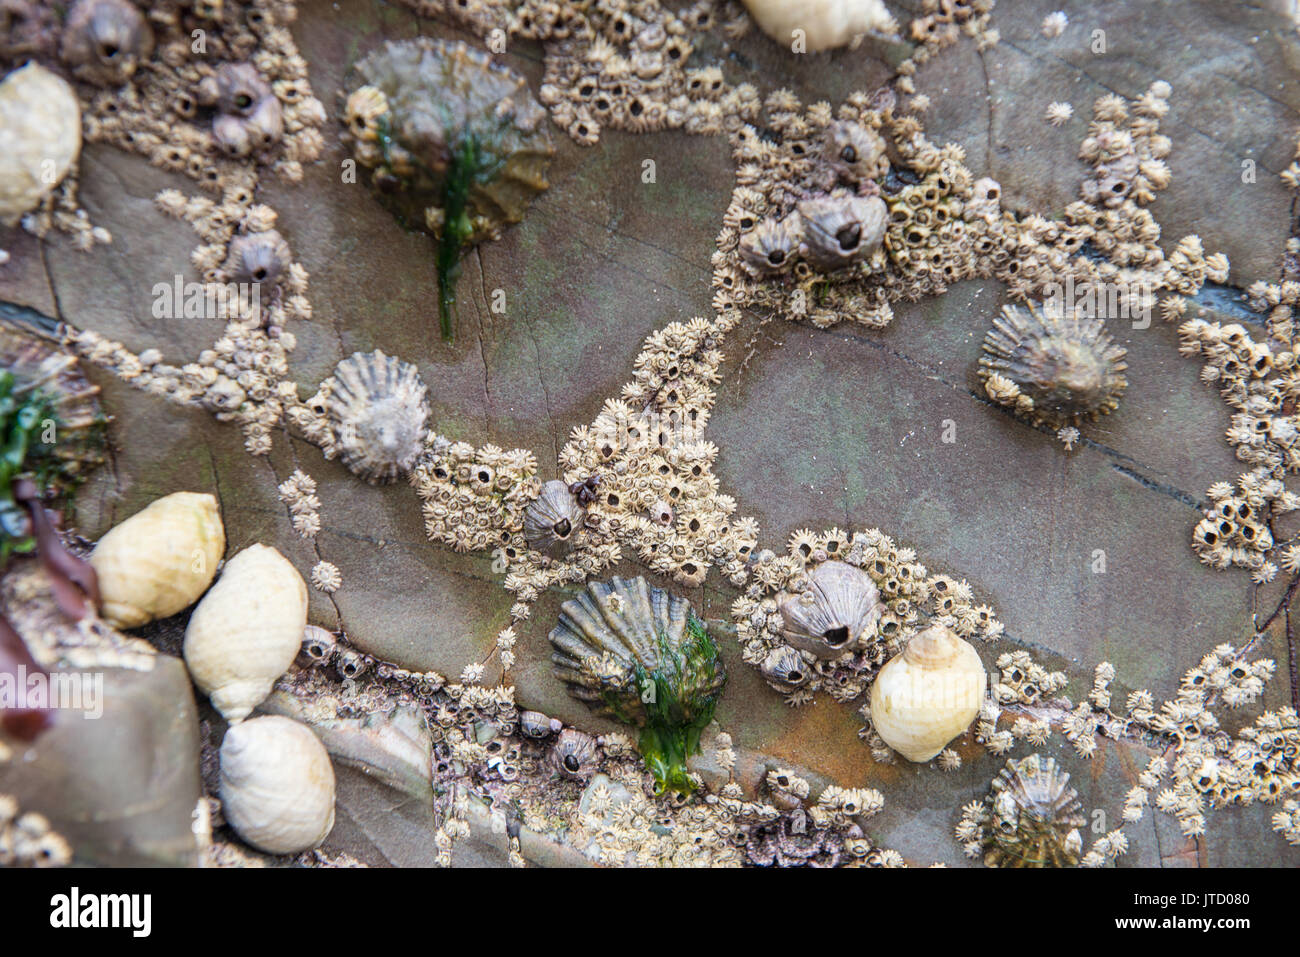 Crustaceans cling on to rocks at low tide. Wales. United Kingdom. - Stock Image